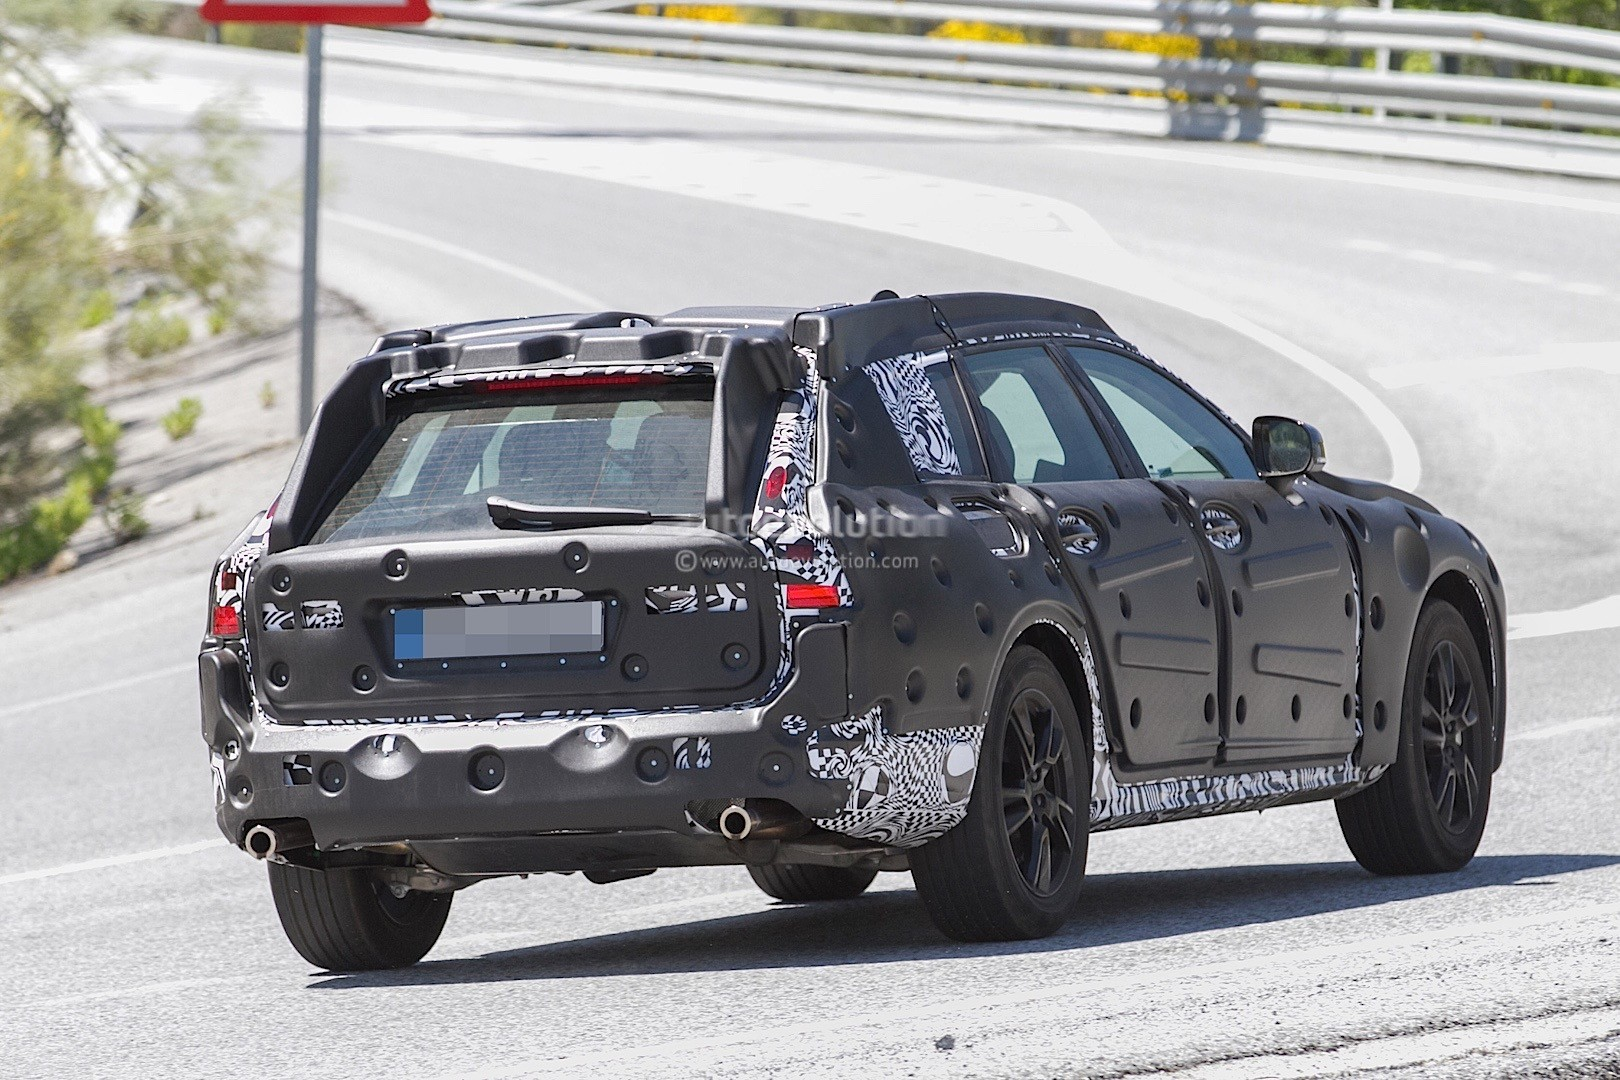 2017 Volvo V90 Cross Country Spied, Stands High Off the Ground - autoevolution